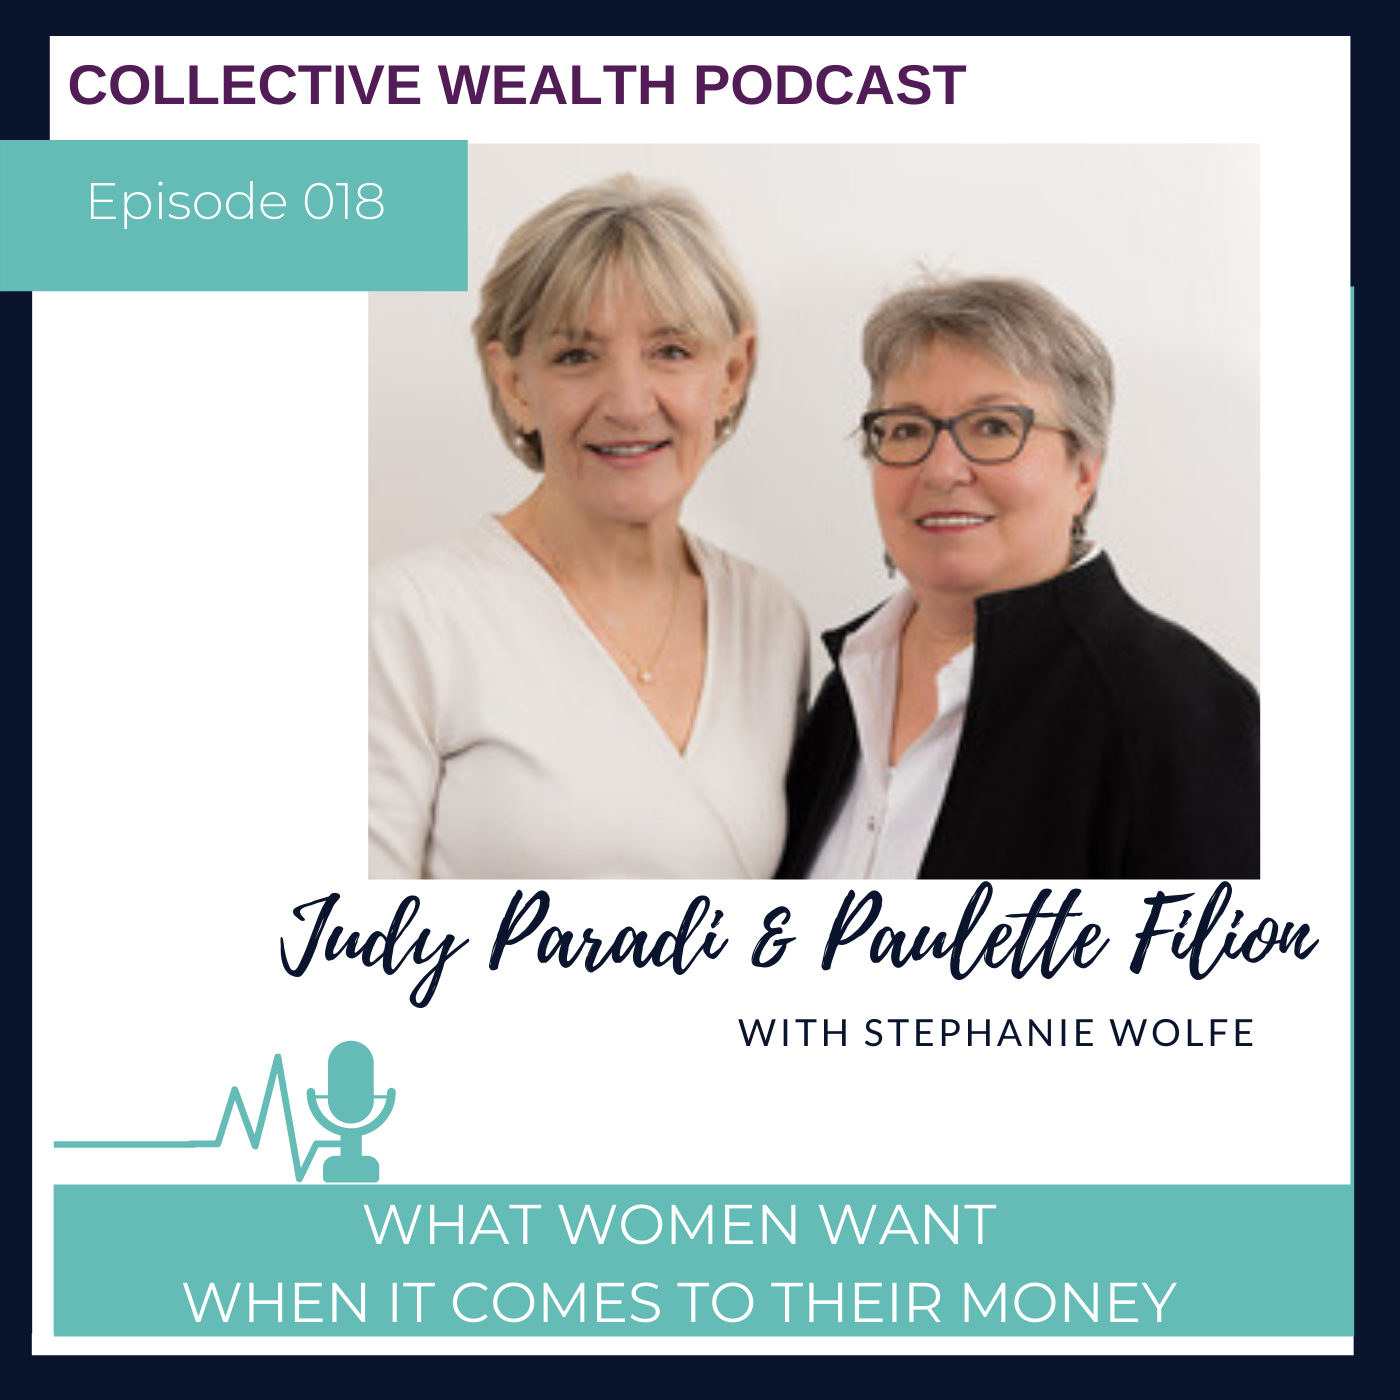 S1E18: What women want when it comes to their money